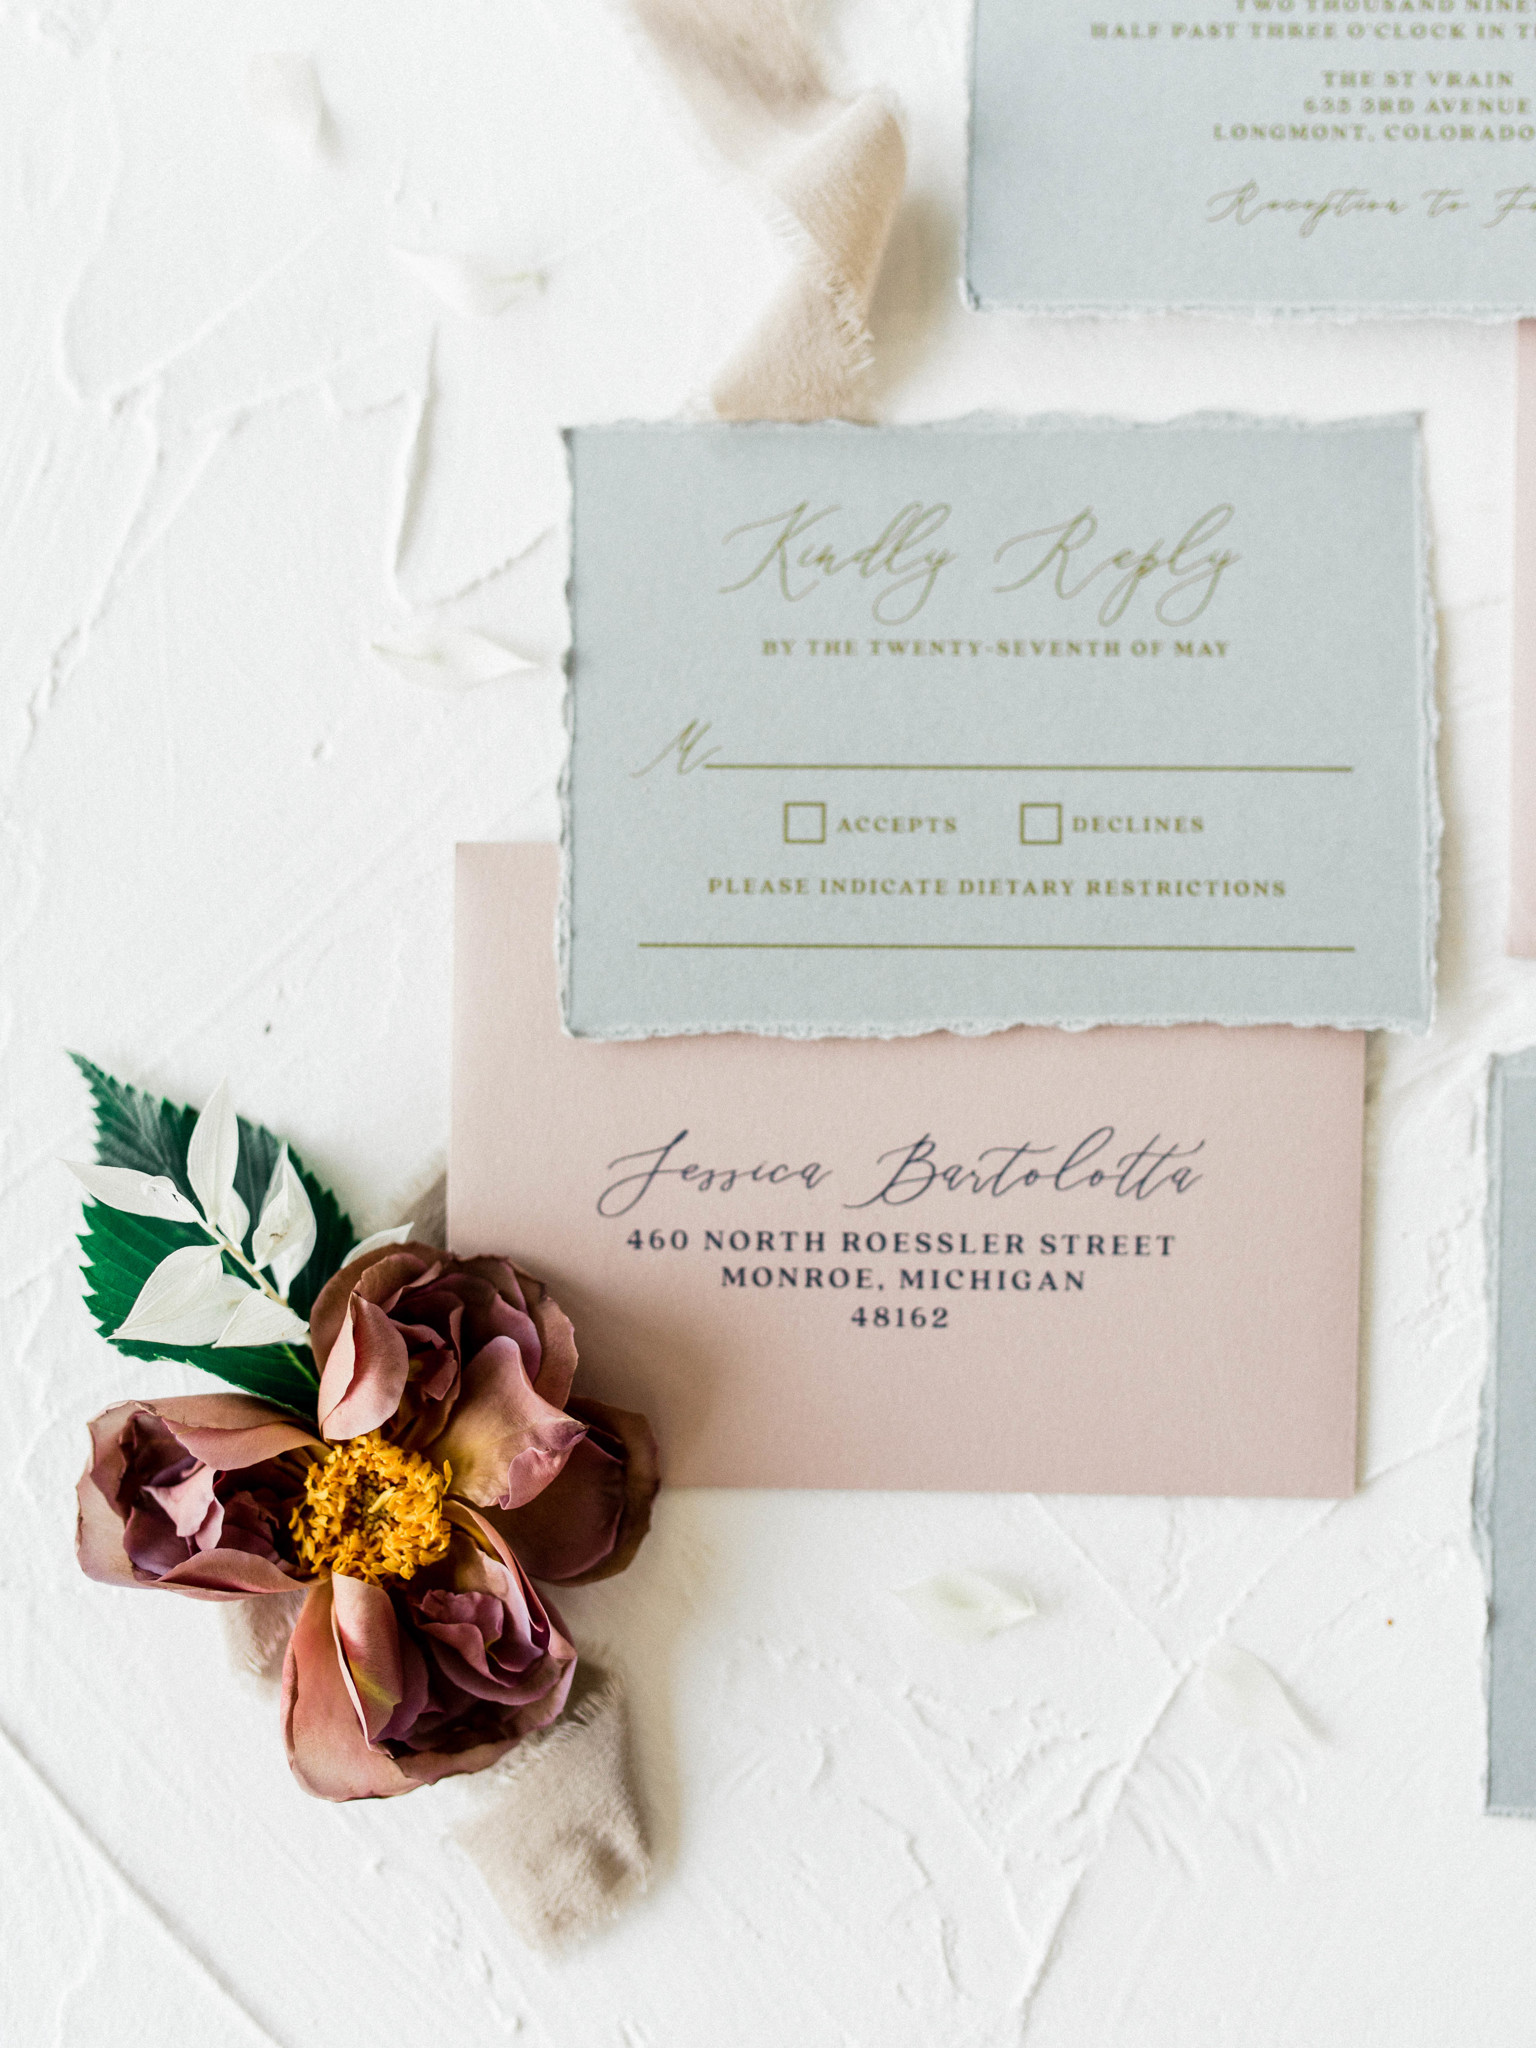 Wedding invitation suite: Whimsical mauve wedding inspiration on Alexa Kay Events. See more romantic wedding ideas at alexakayevents.com!